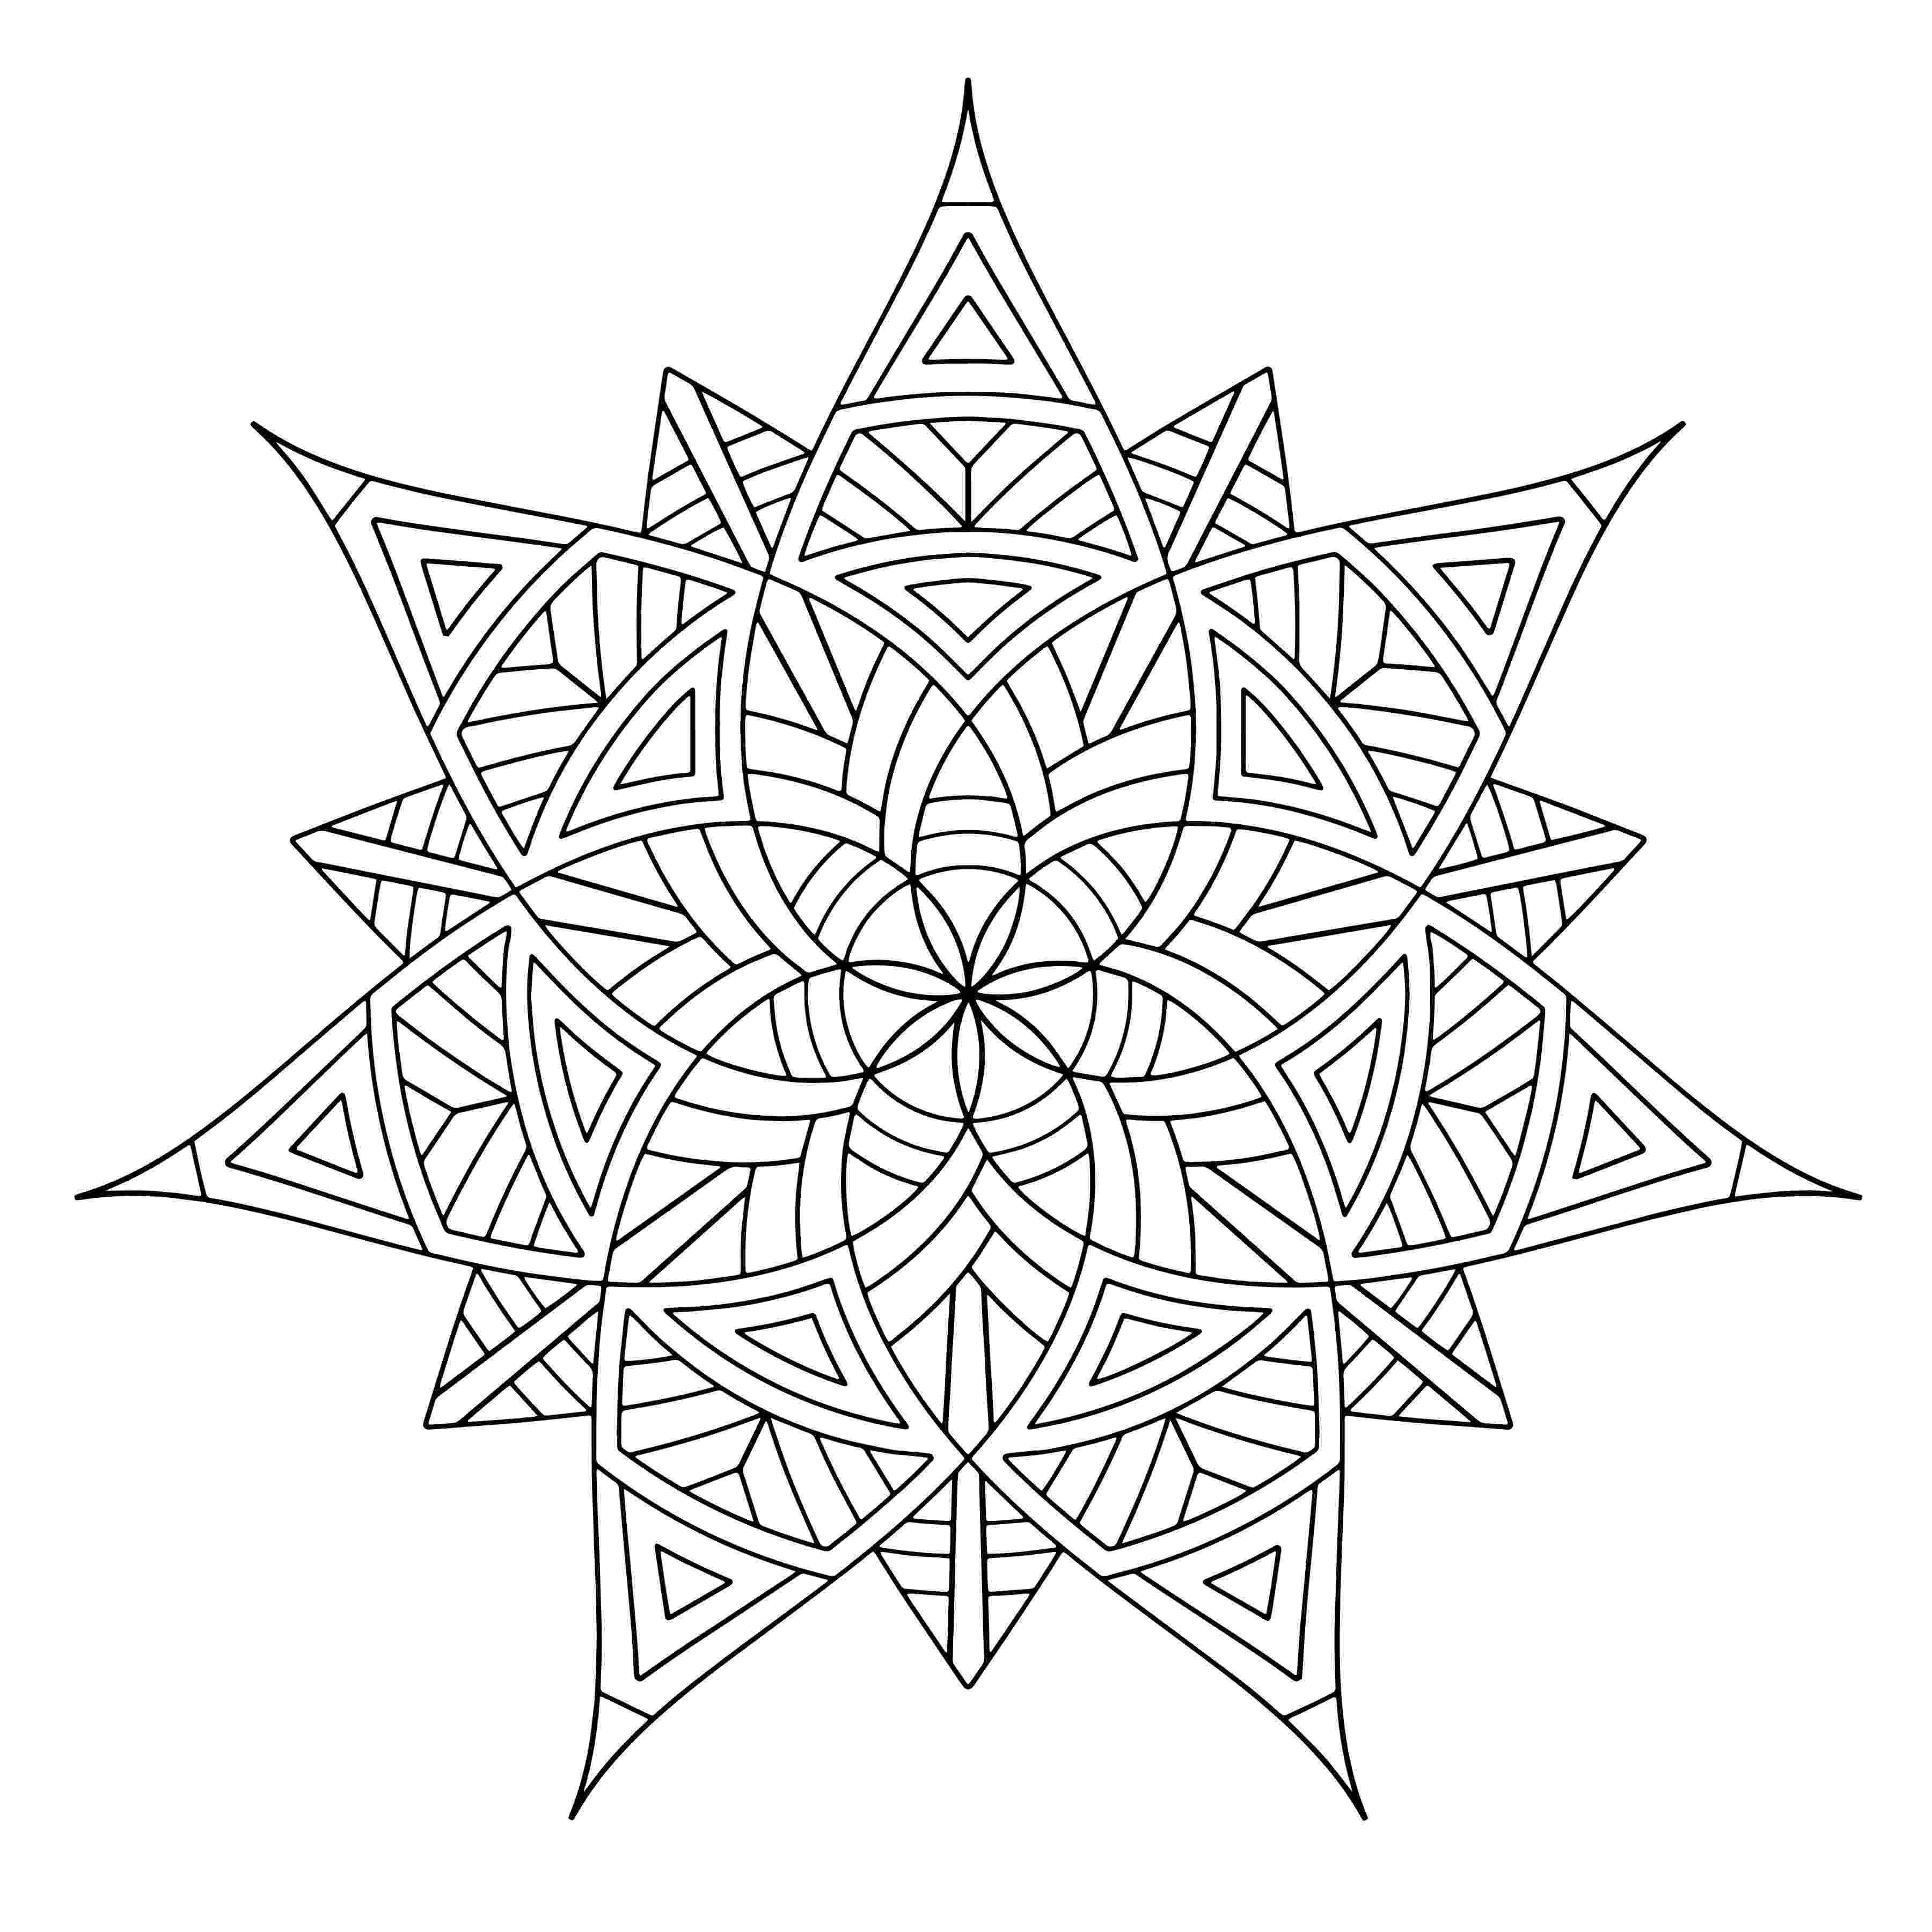 free printable coloring pages for adults geometric free printable geometric coloring pages for adults coloring geometric pages adults for printable free